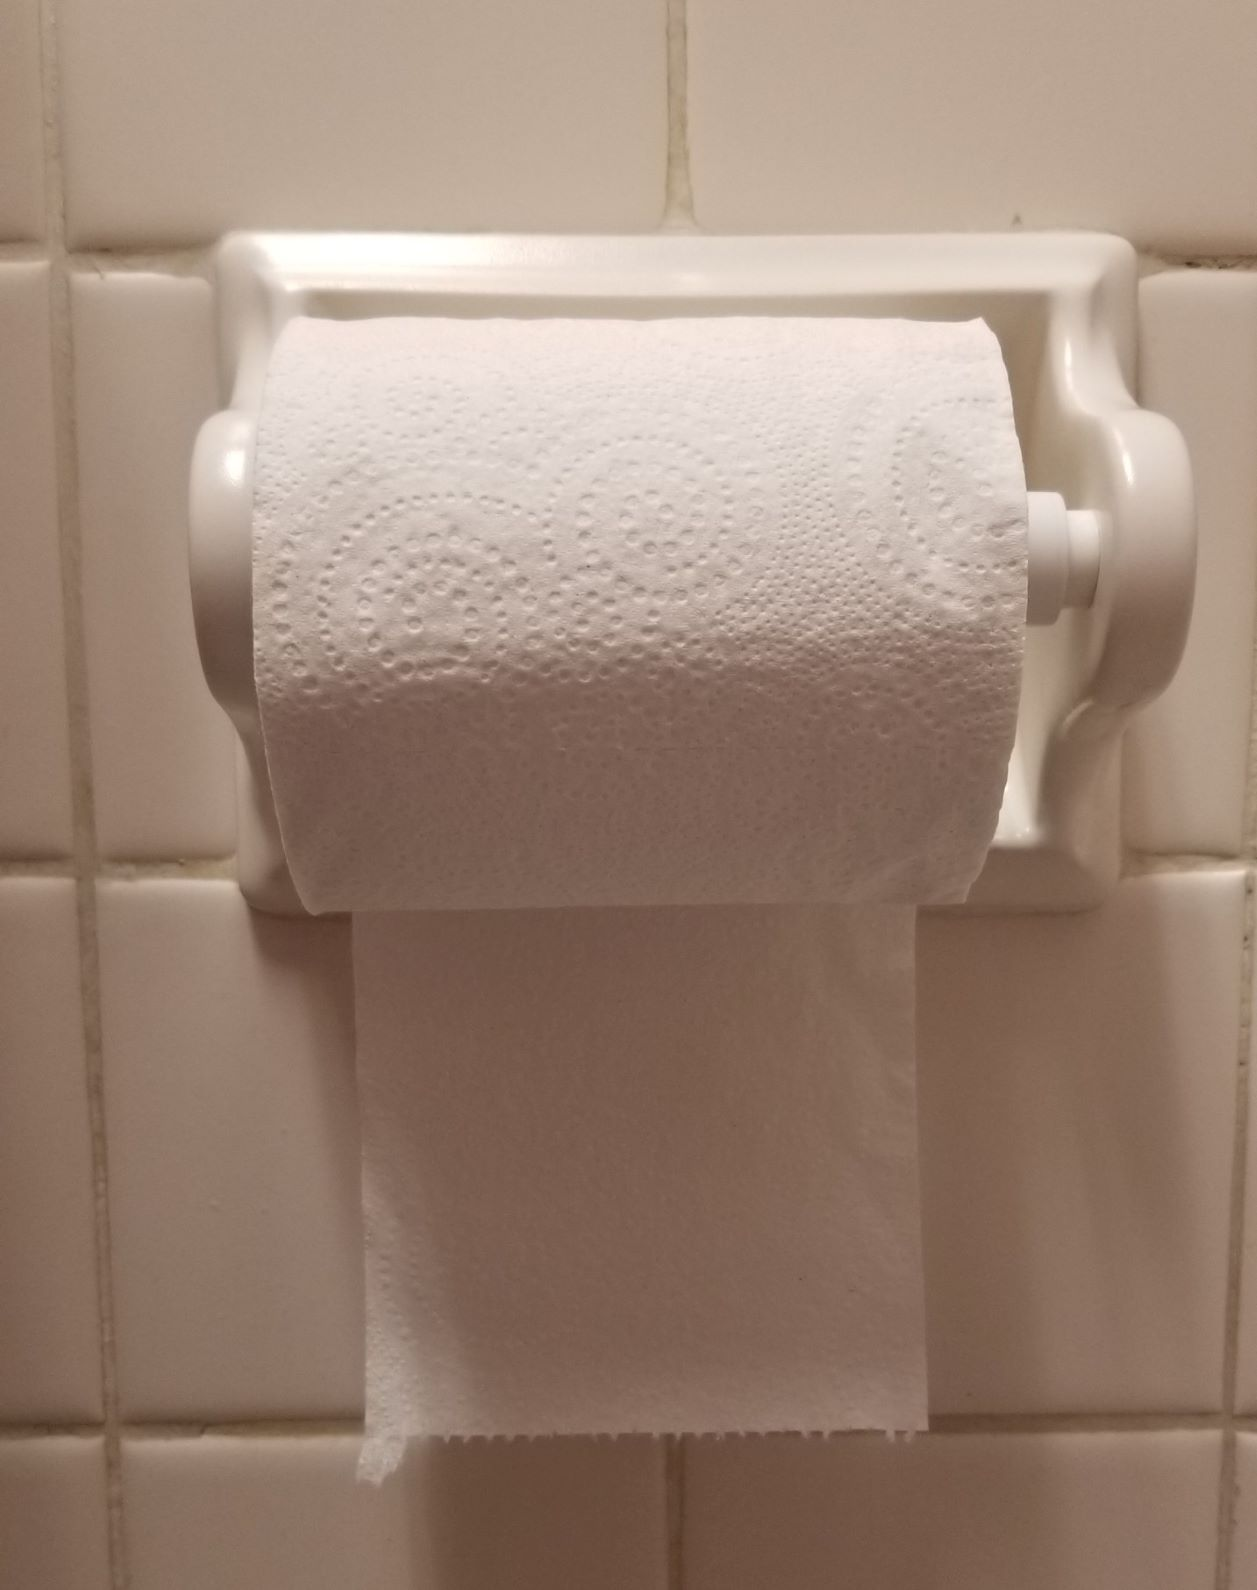 The Under Roll. Madness.  (Don't tell anyone, but several of us decided to take extra bathroom breaks to help get rid of this roll quickly.)